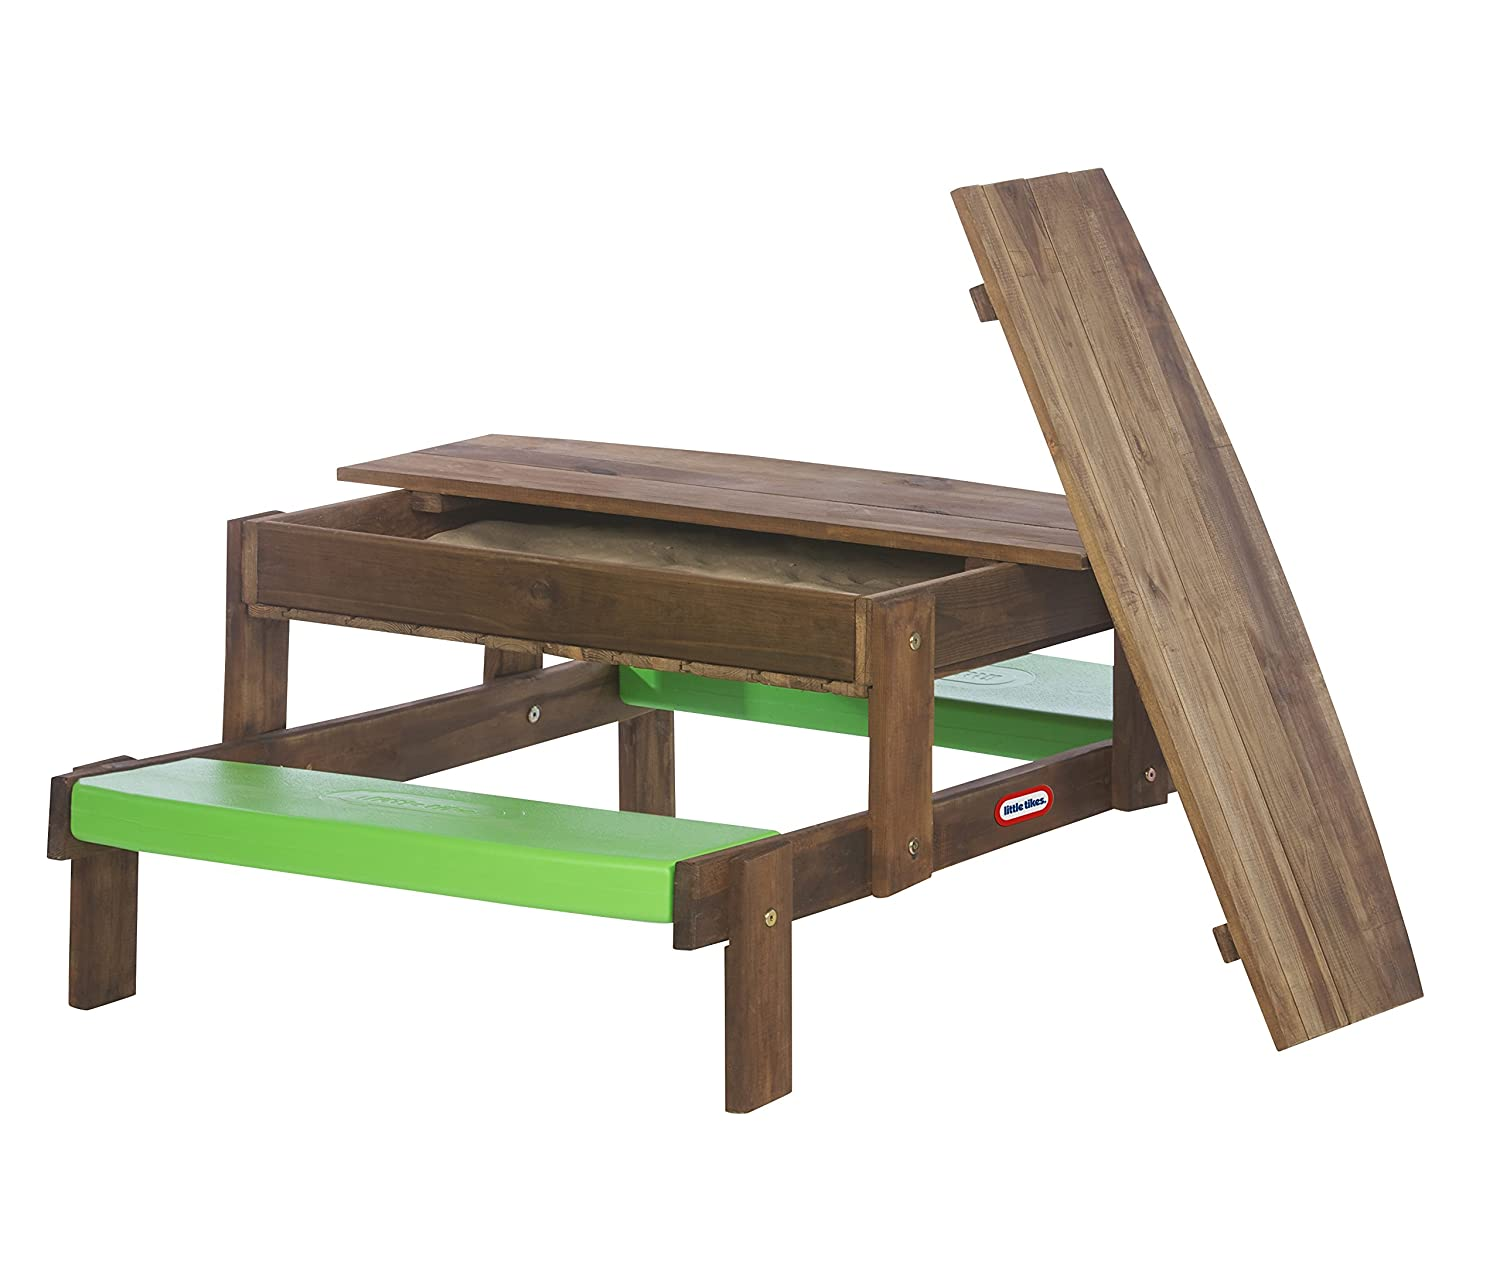 Marvelous Little Tikes 405008 Lt 2 In 1 Wooden Picnic Table With Built In Sand Pit 172847 Pabps2019 Chair Design Images Pabps2019Com